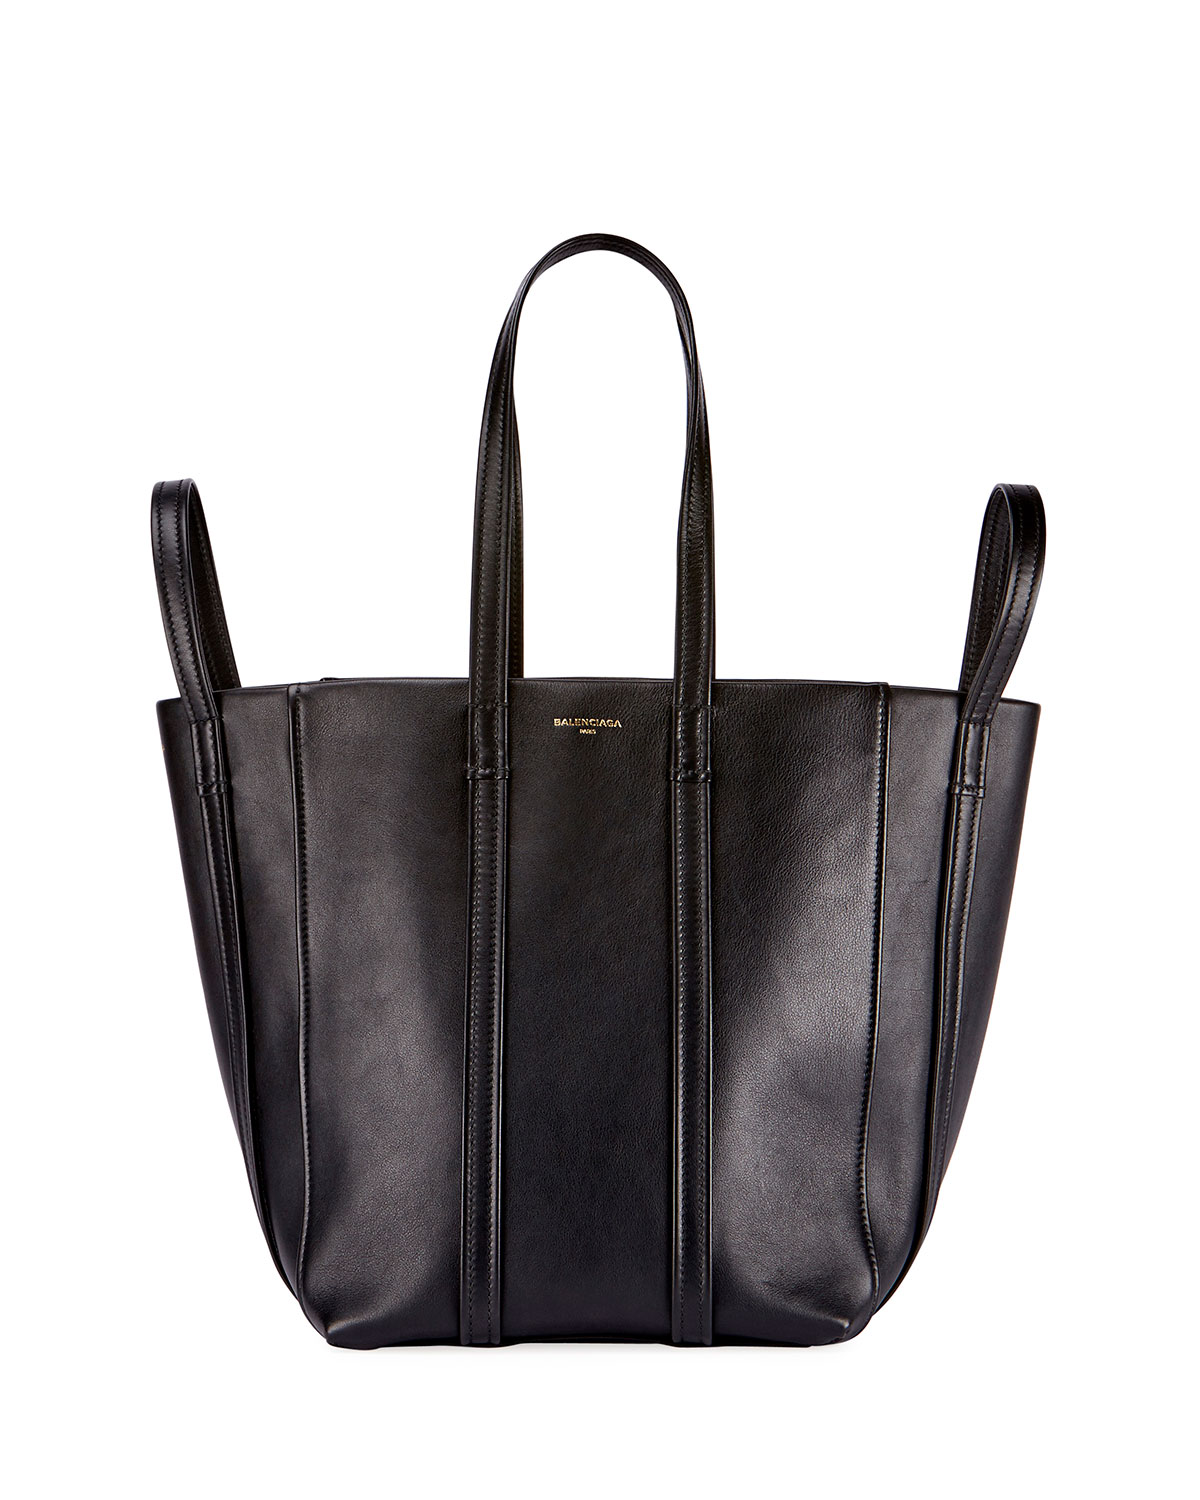 1a89190a07f5 Balenciaga Laundry Cabas 4-Strap Leather Extra Large Tote Bag ...